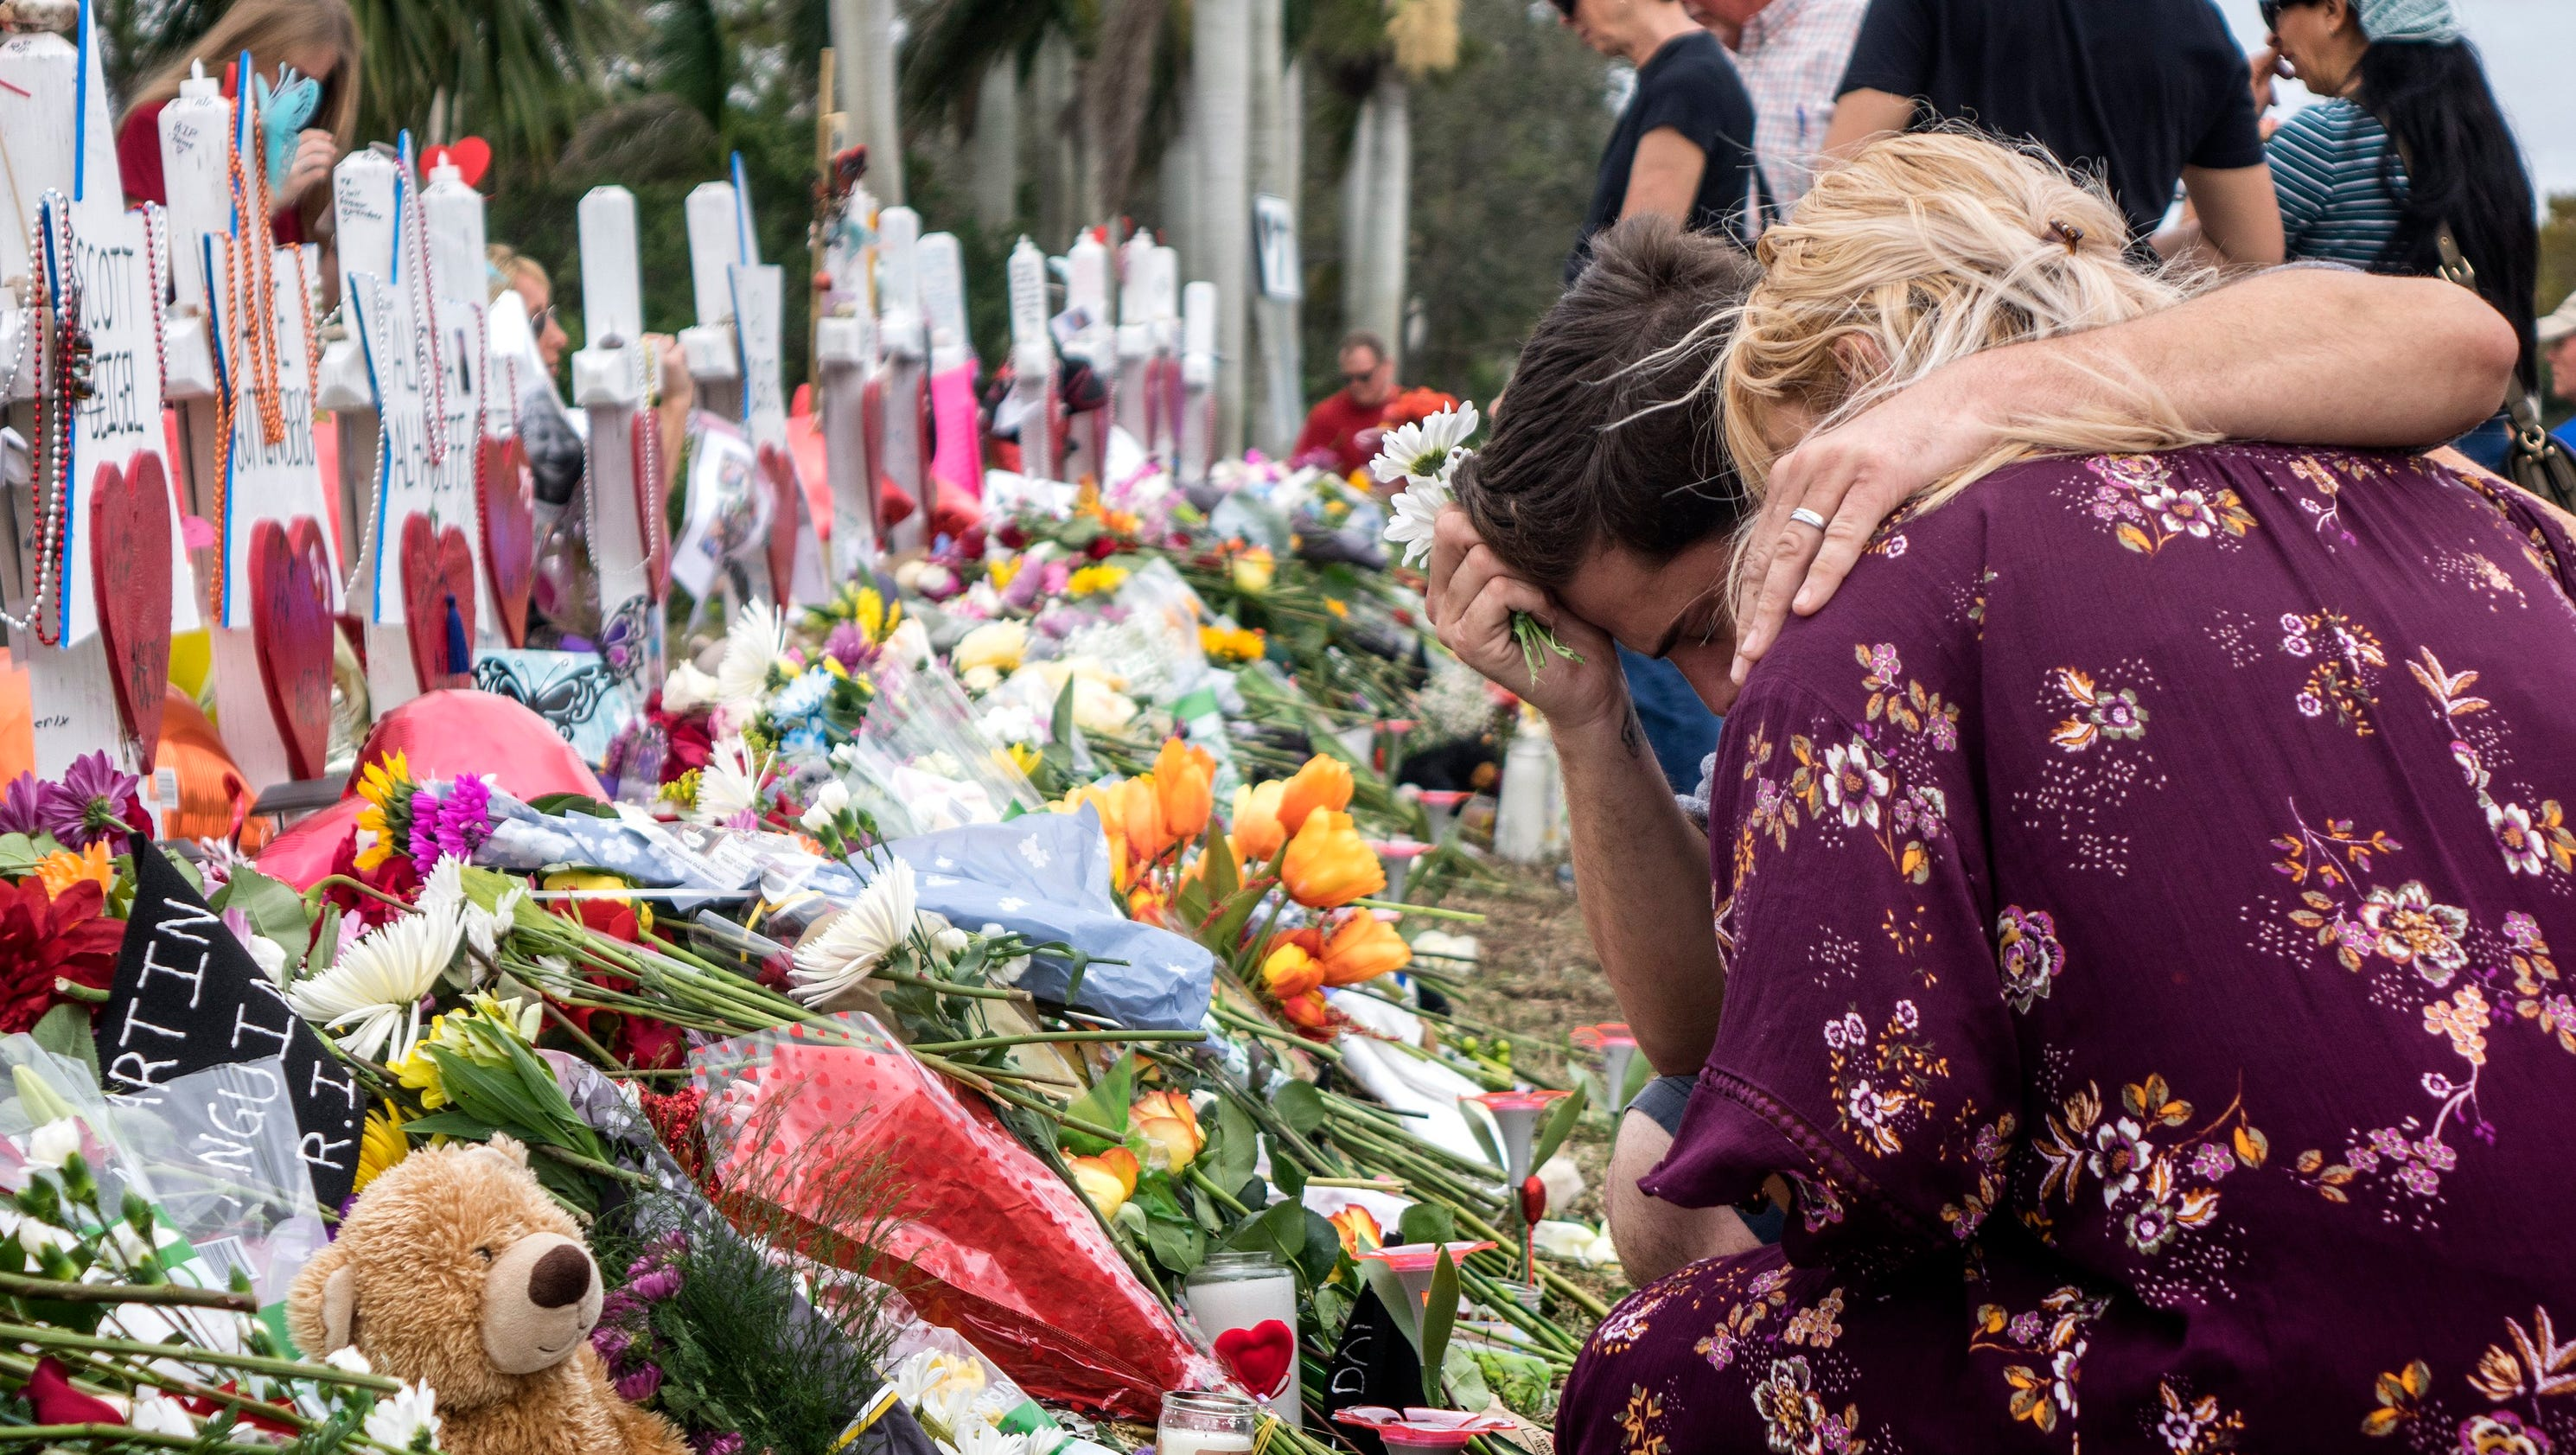 'It's devastating': Cop stayed outside during Florida massacre while students died